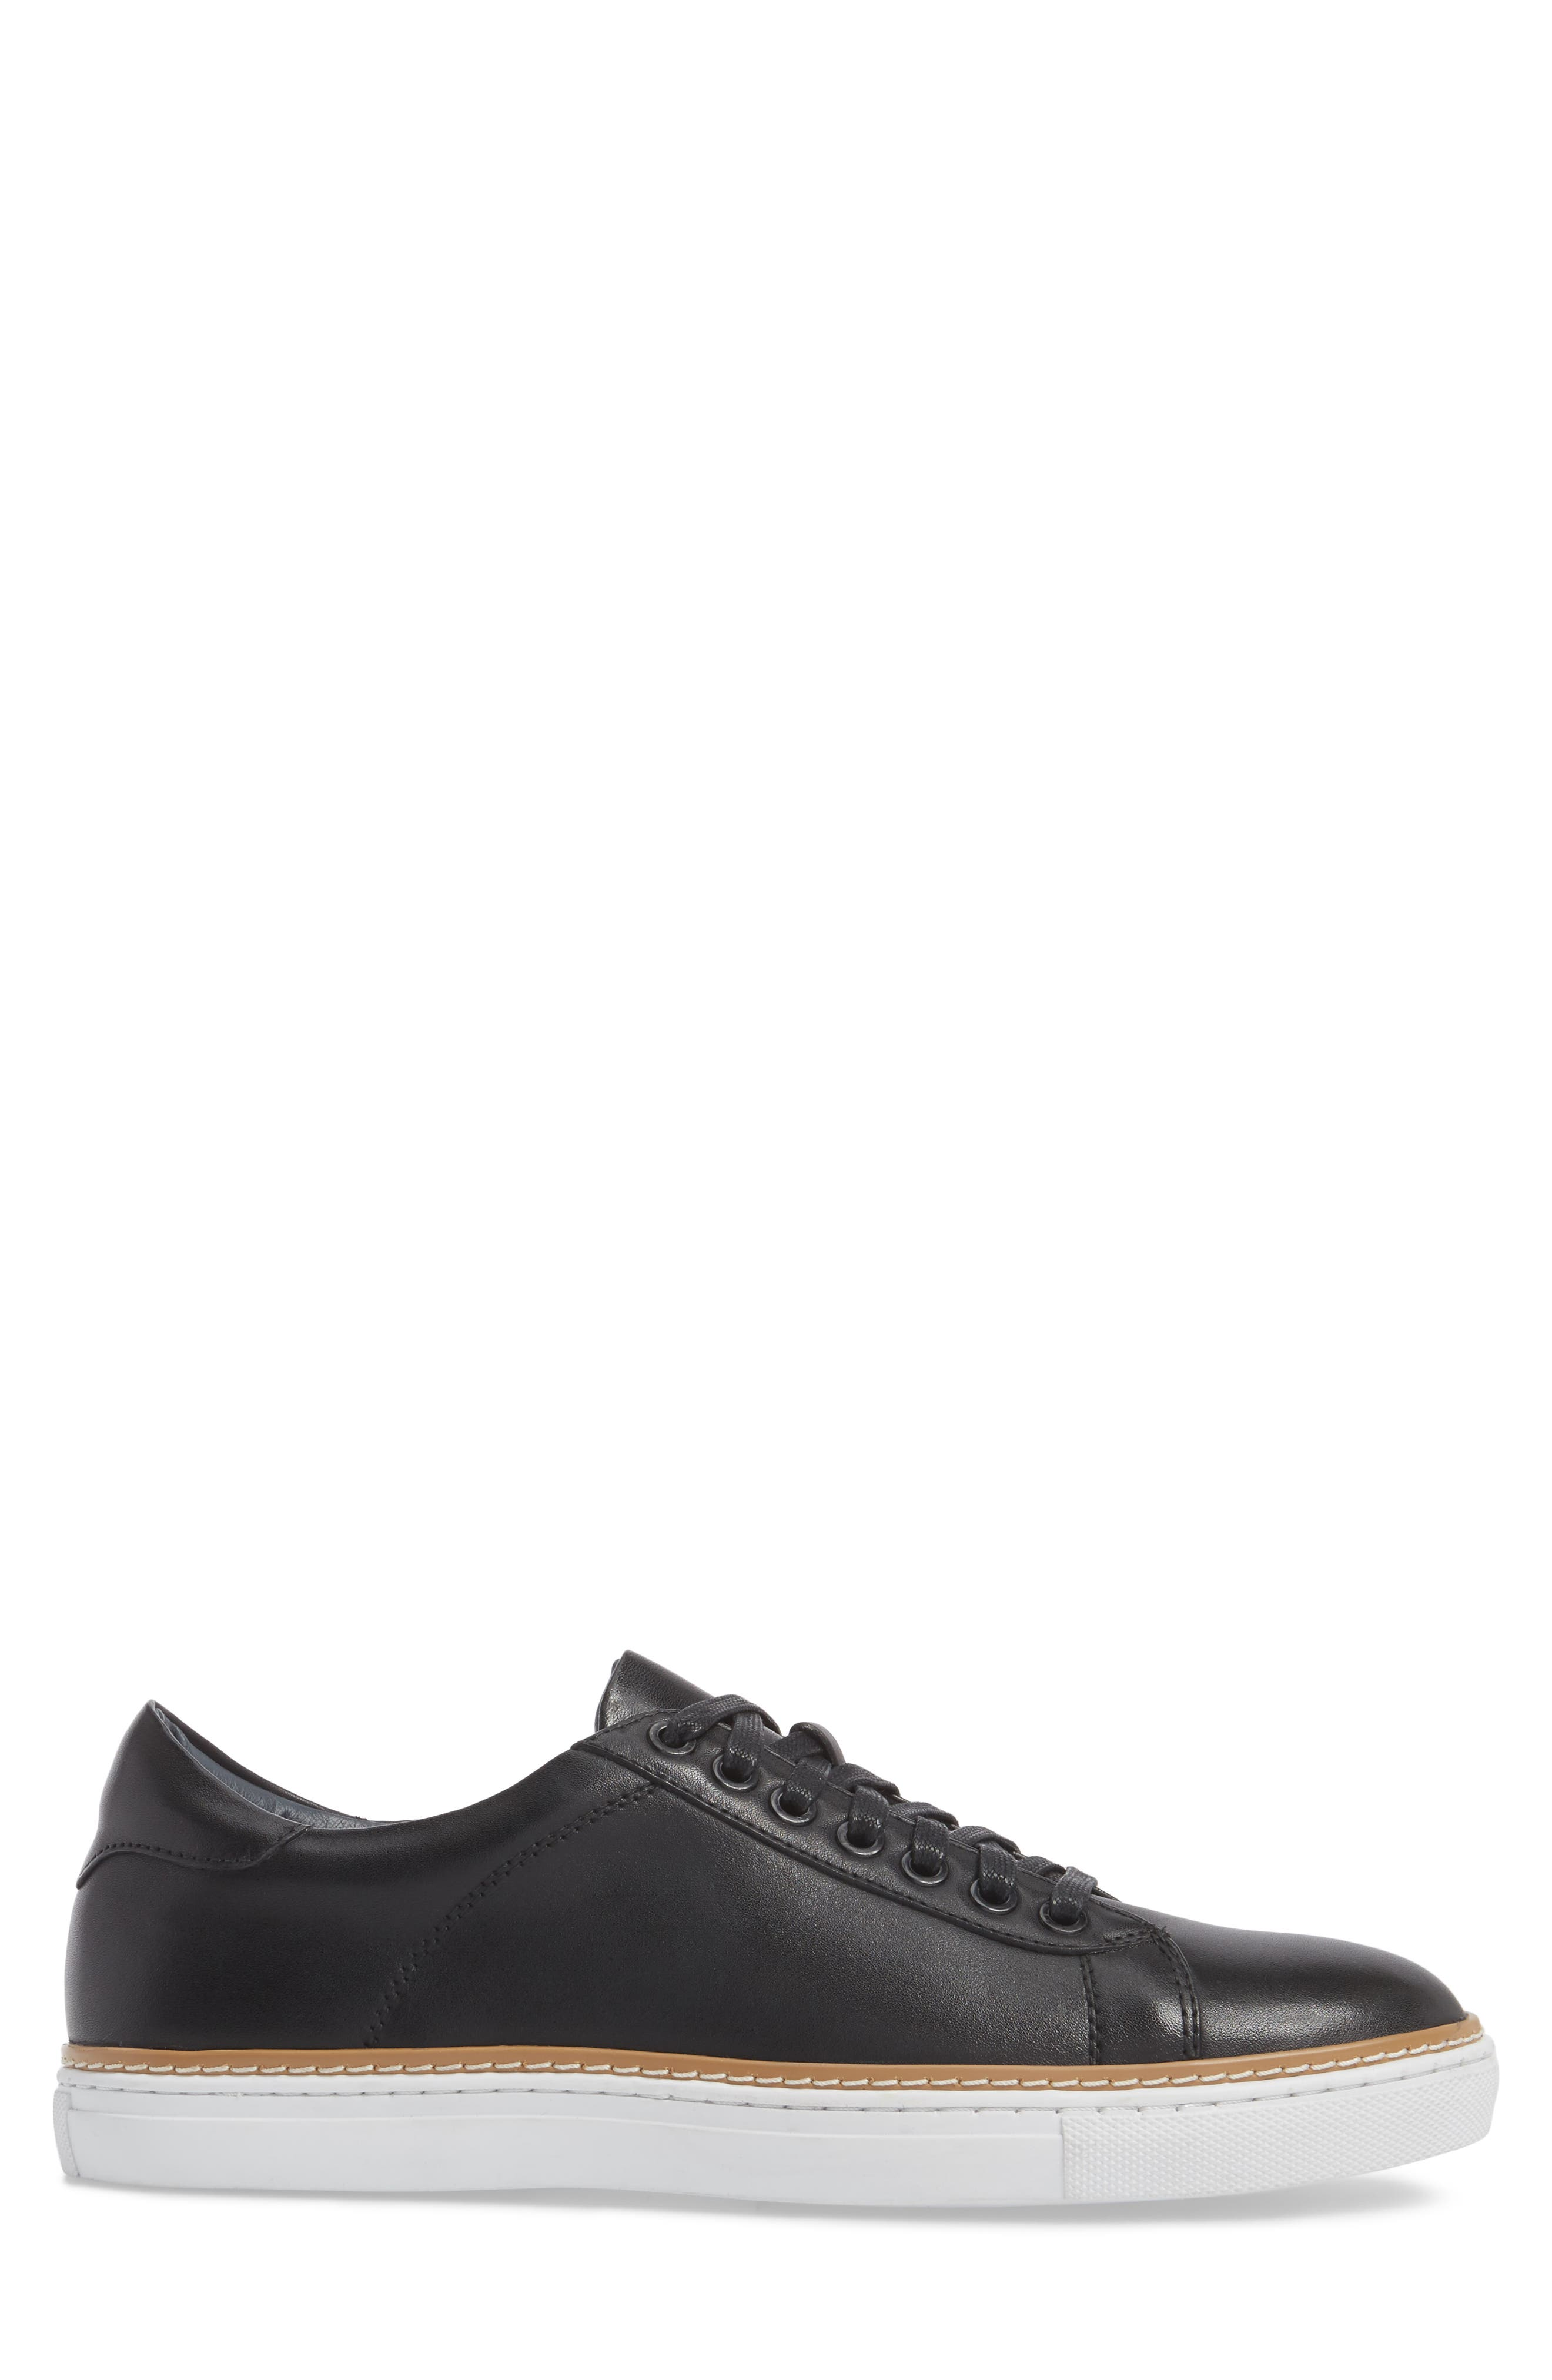 Alternate Image 3  - English Laundry Juniper Low Top Sneaker (Men)